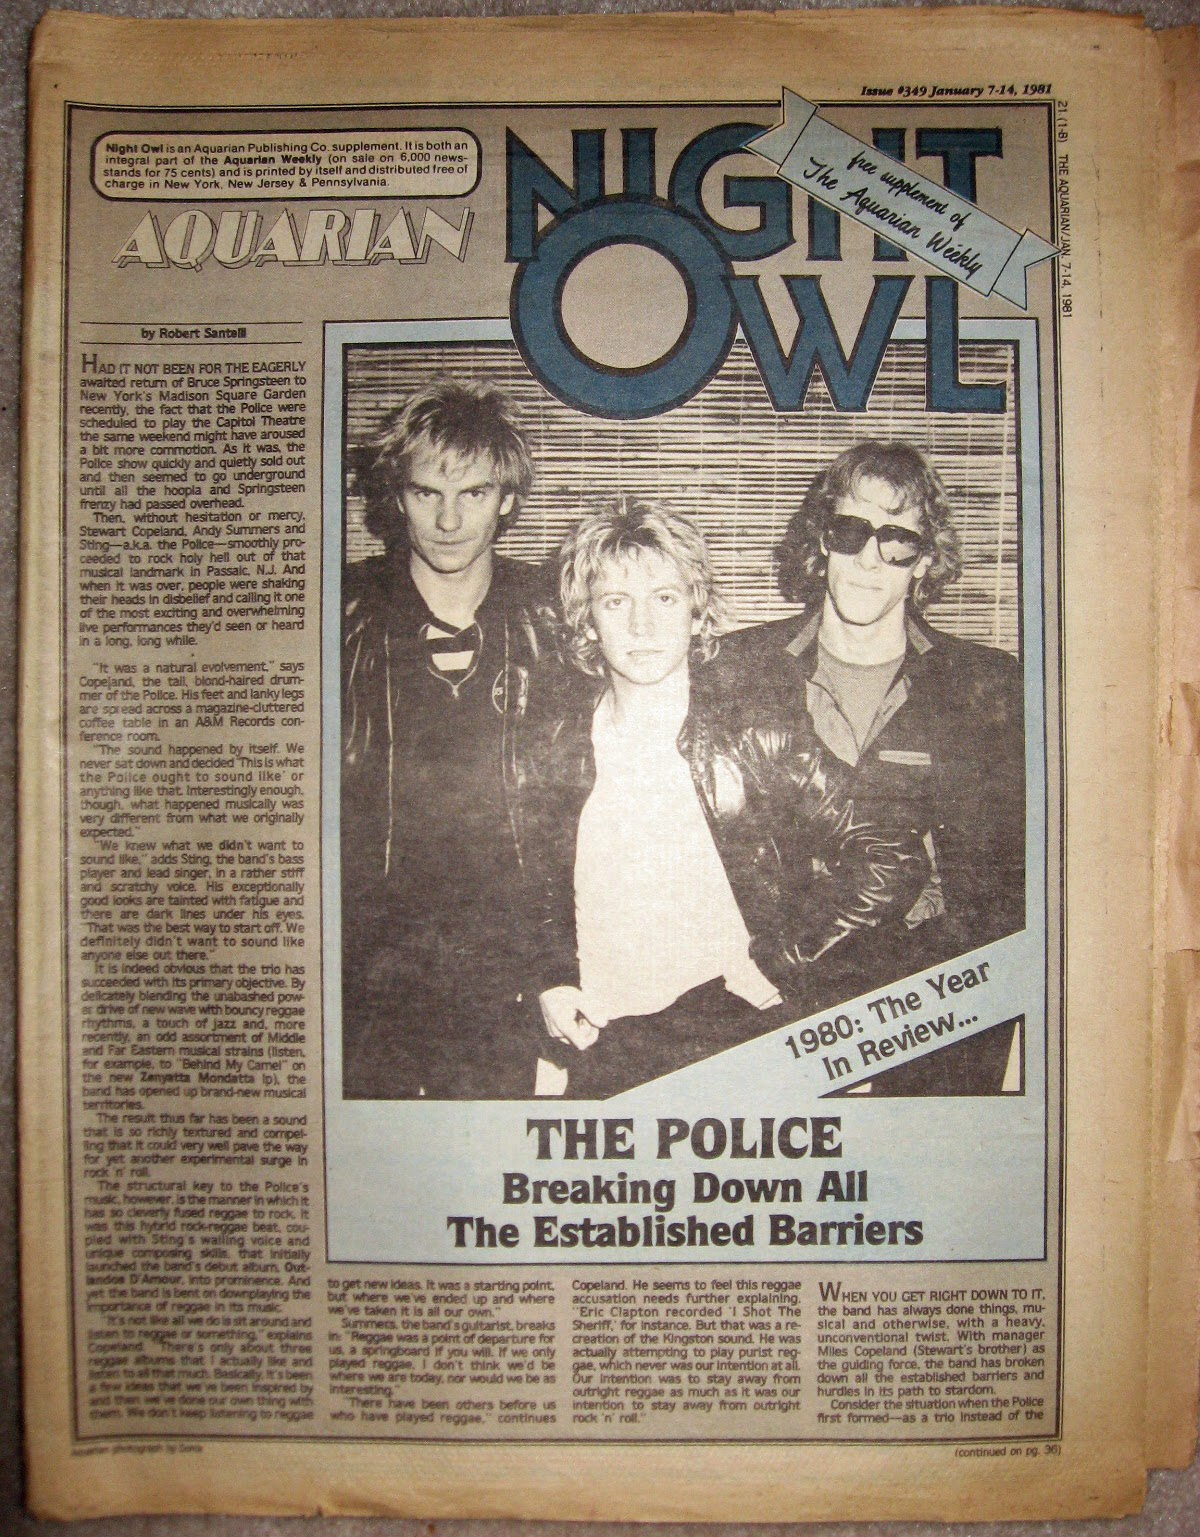 My copy of the Aquarian Night Owl rock mag January 1981